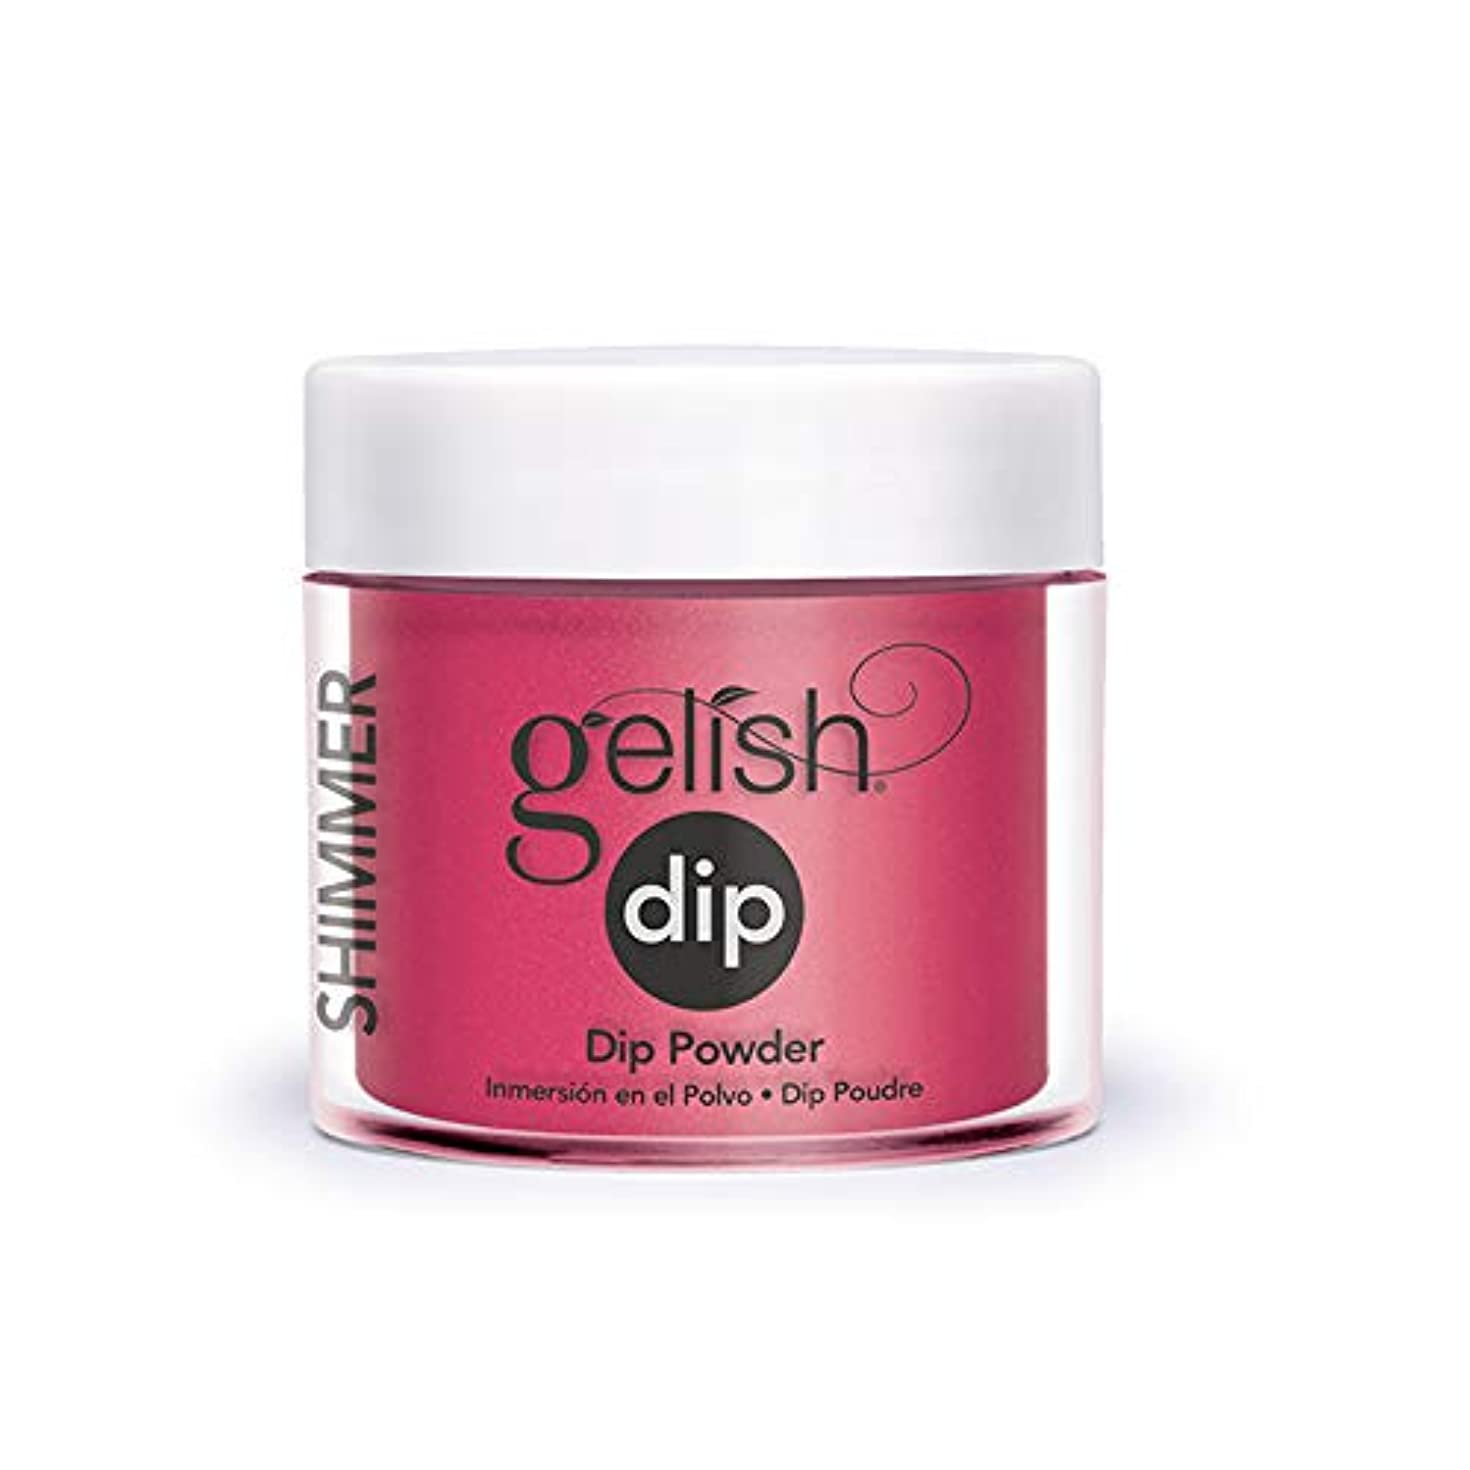 赤ぶどう舗装Harmony Gelish - Acrylic Dip Powder - Gossip Girl - 23g / 0.8oz